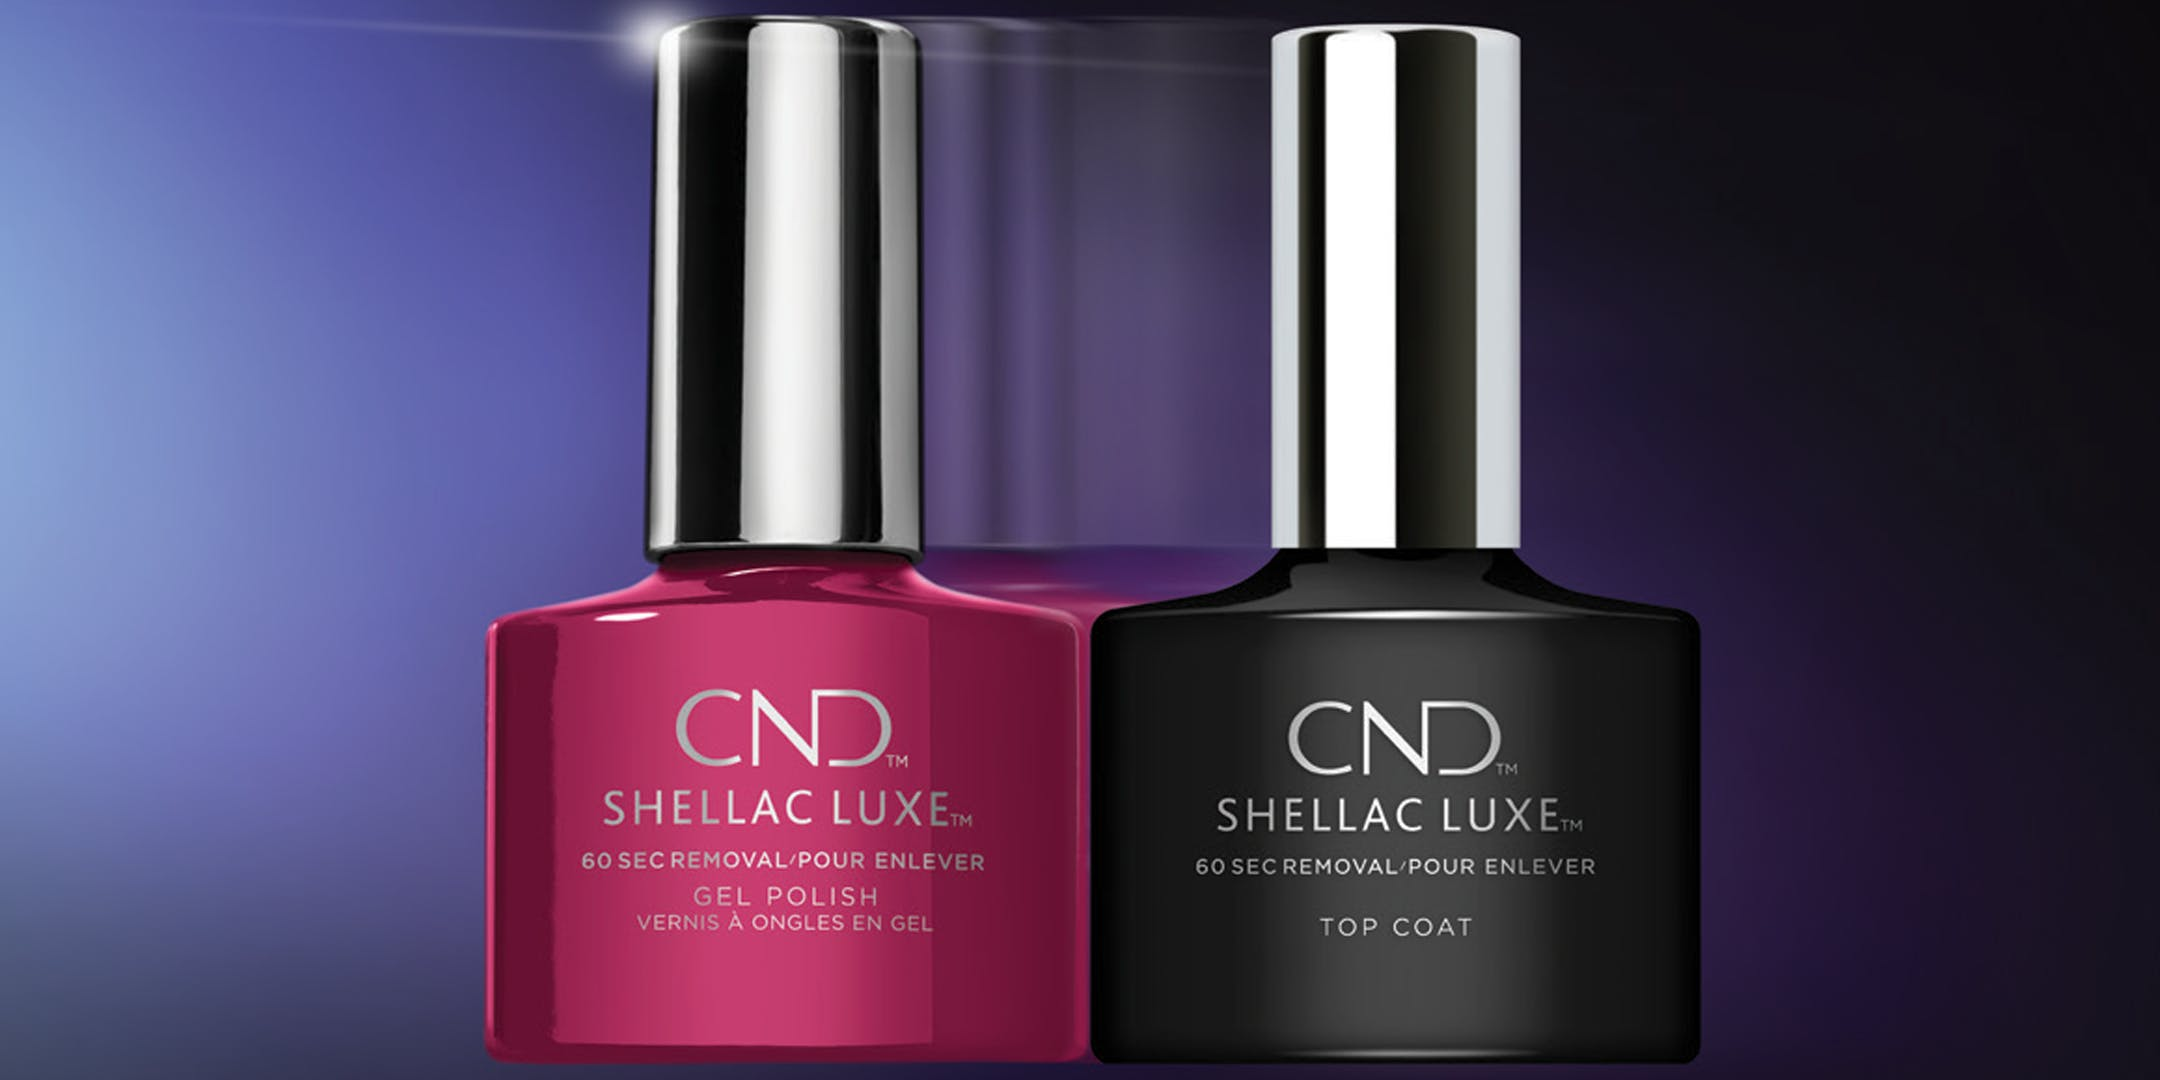 BRAND NEW CND LUXE